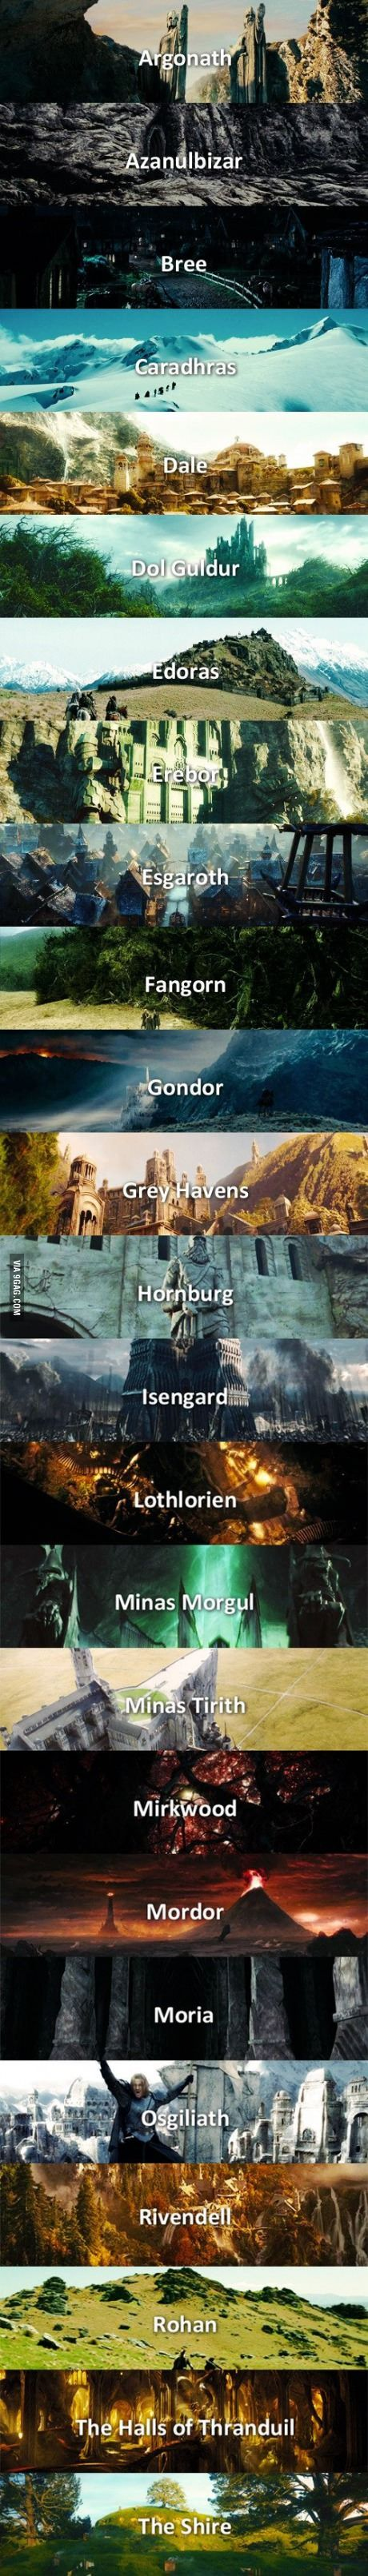 The Middle Earth in a very neat, alphabetized order